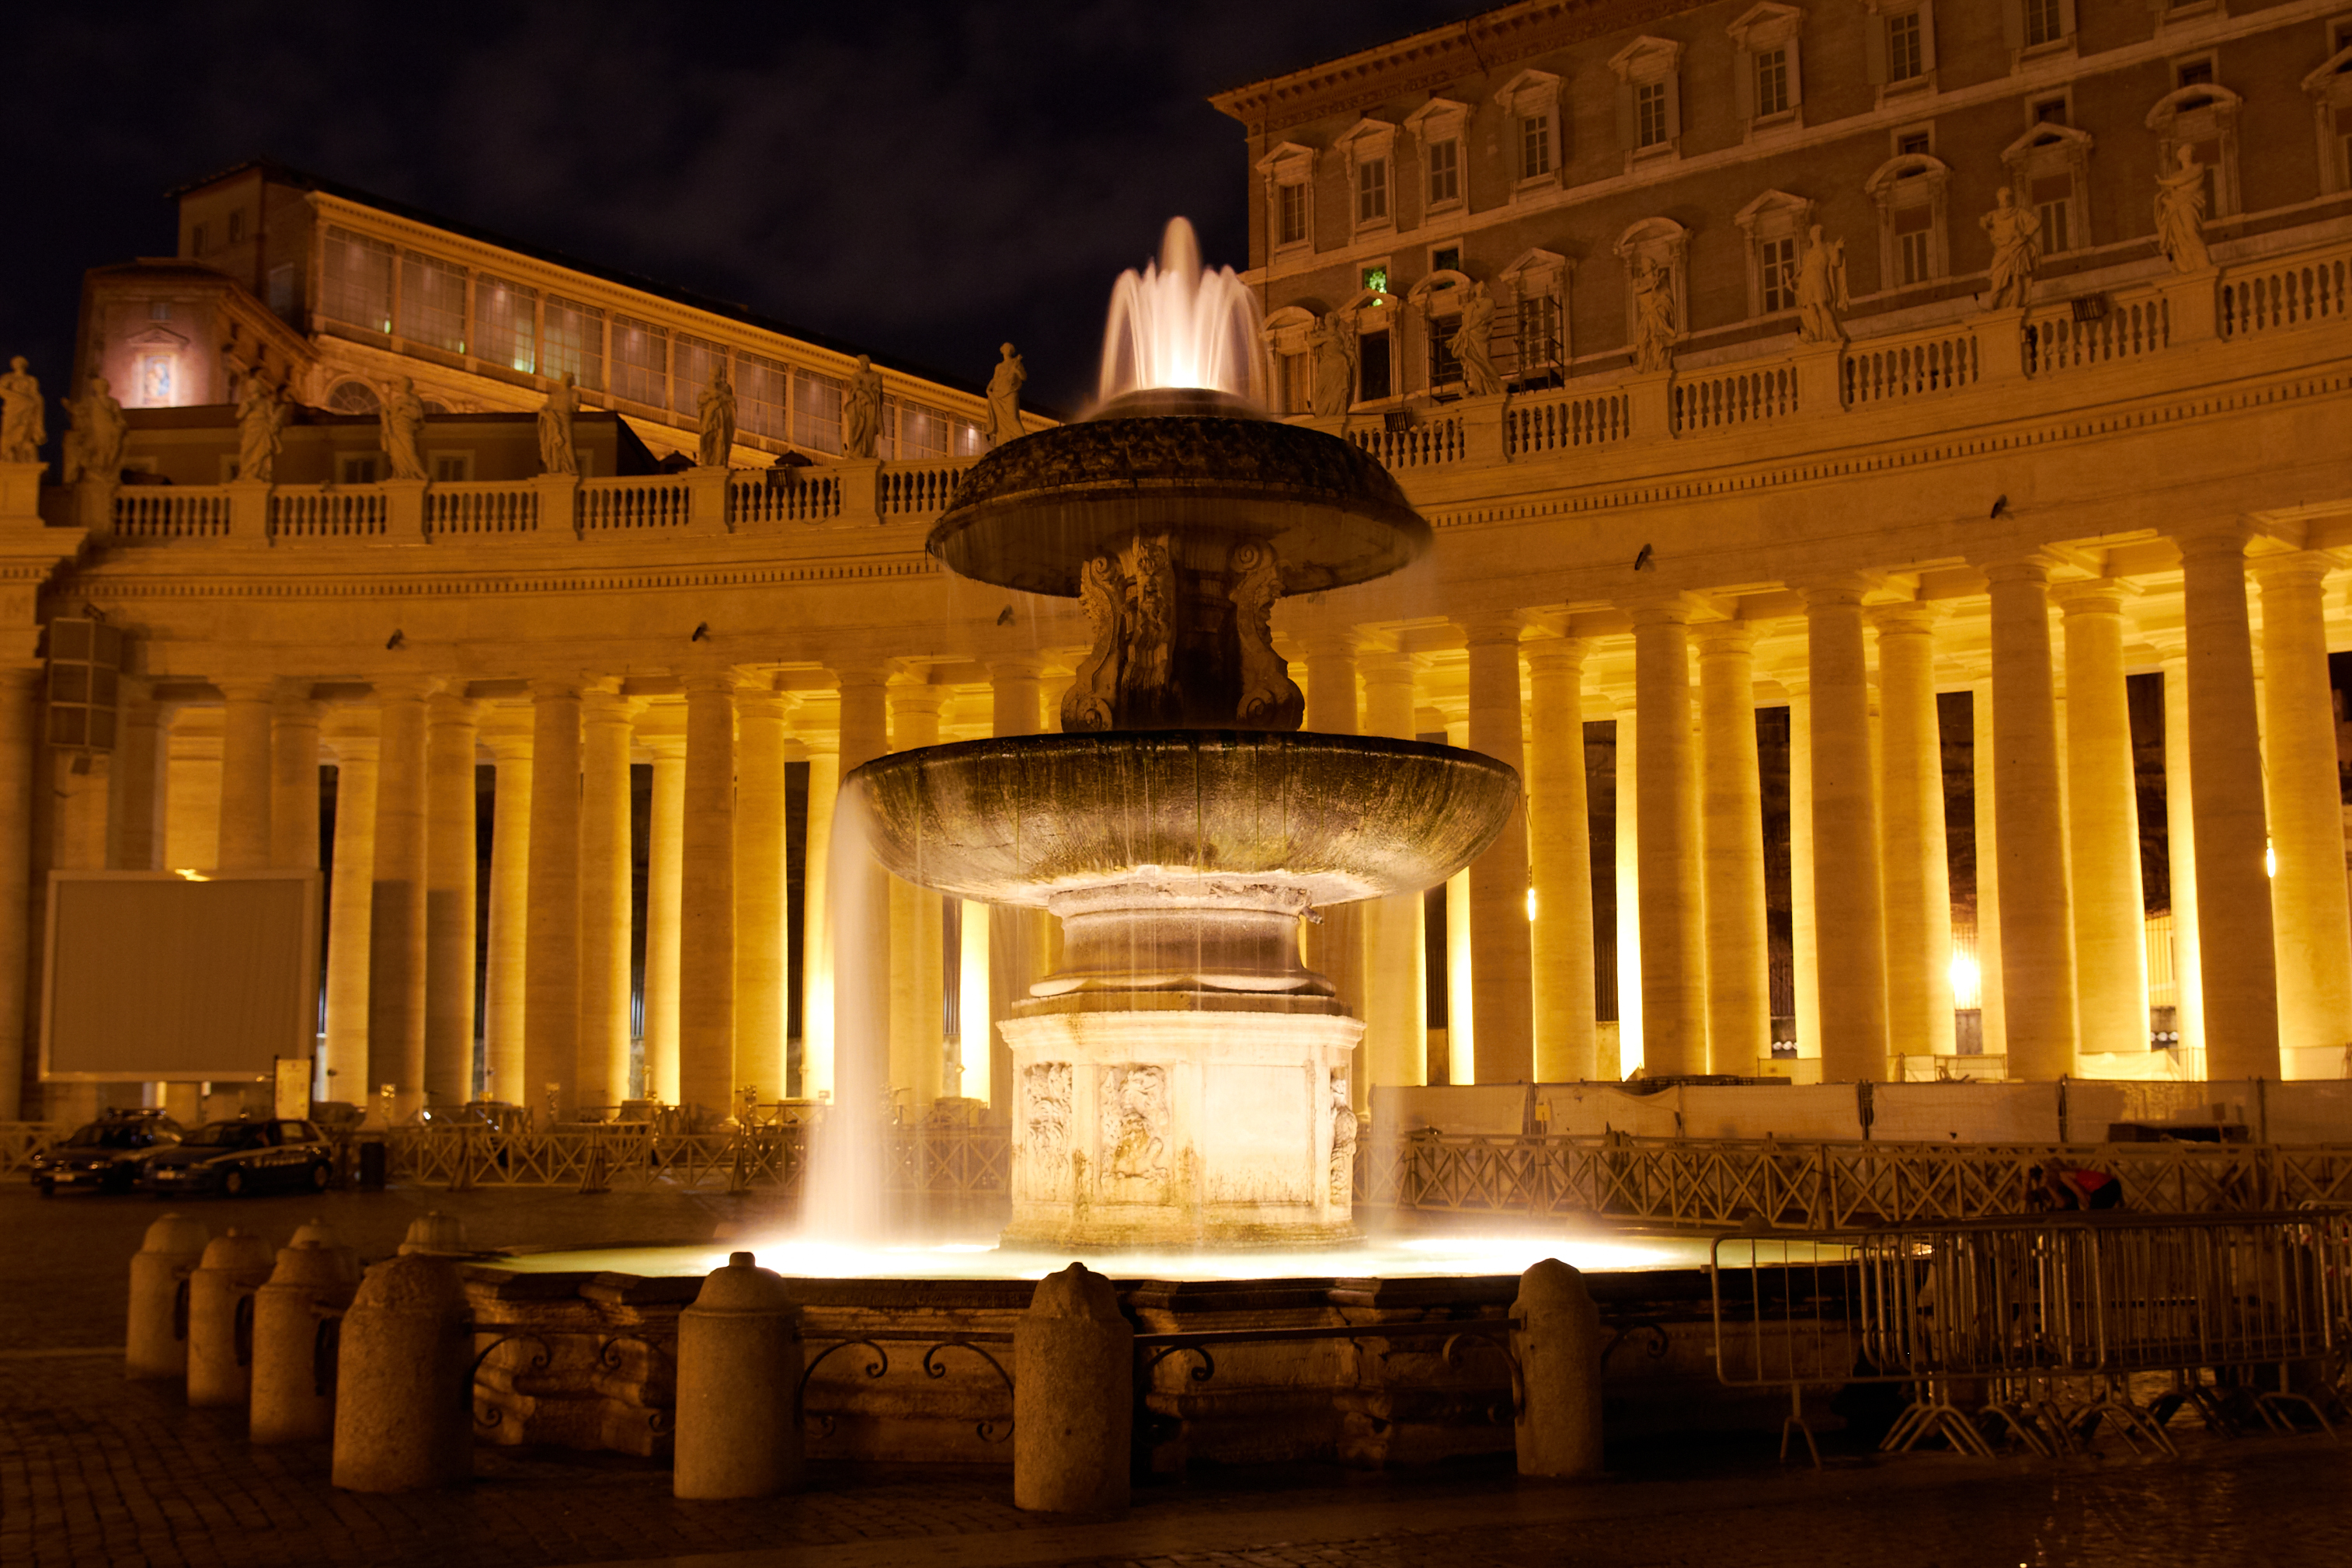 List of fountains in Rome